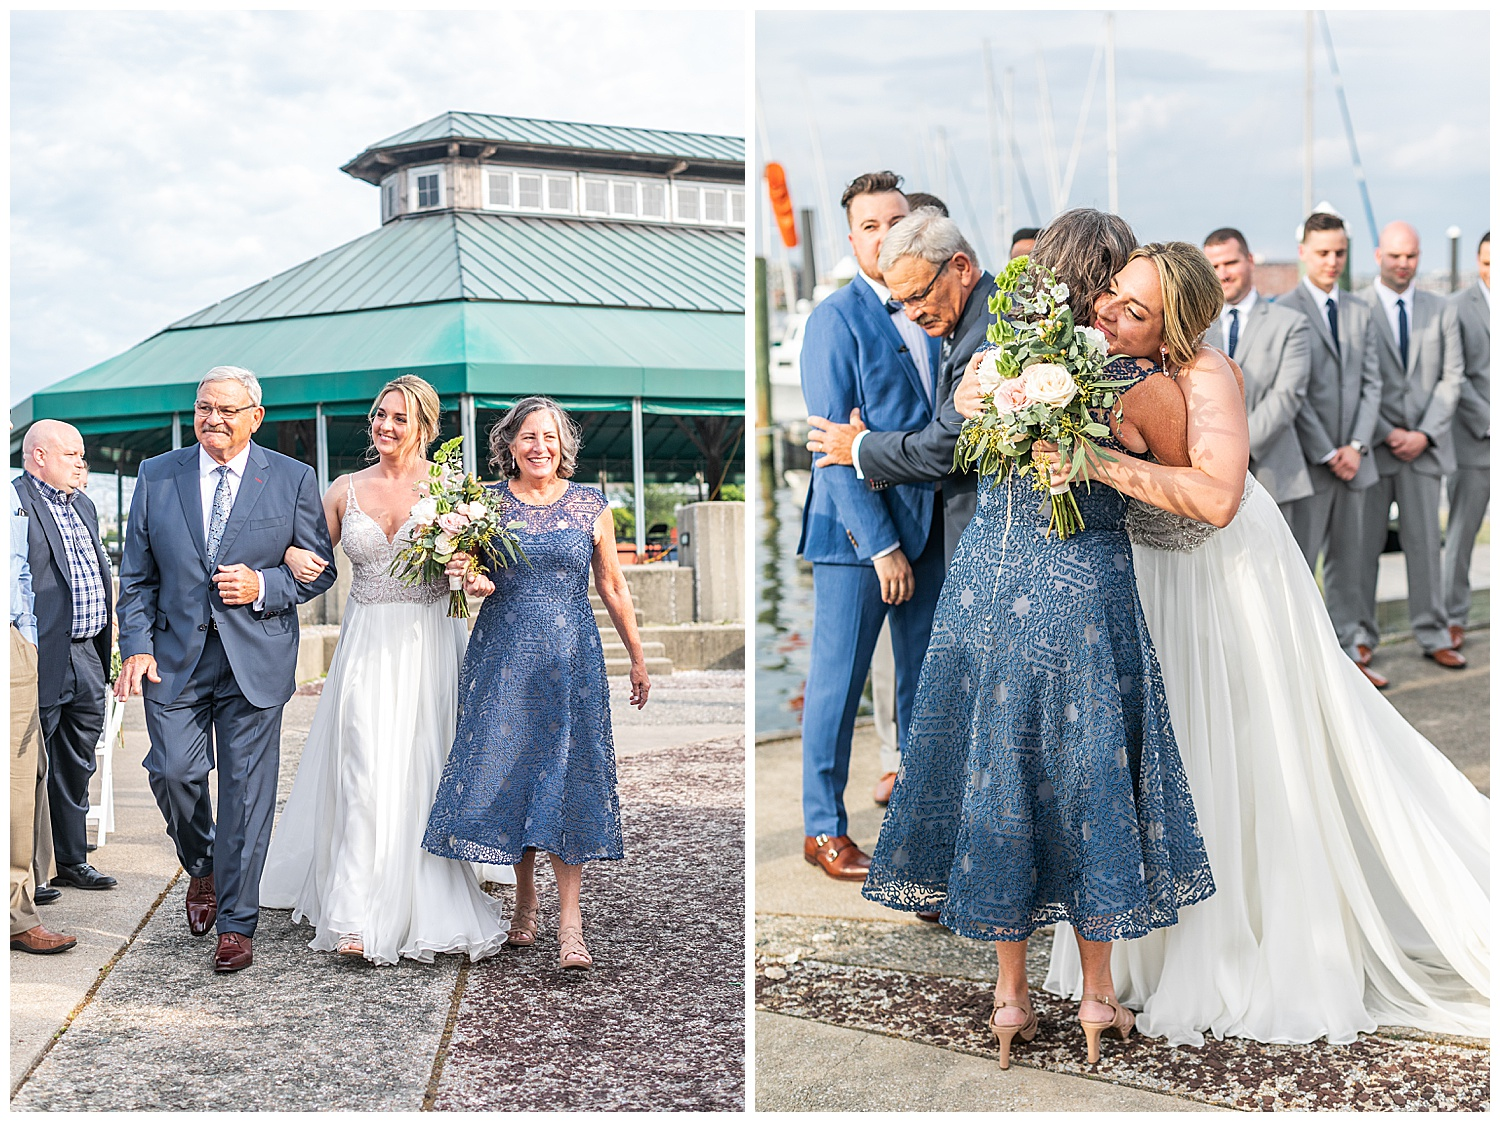 Jenn Brent Baltimore Museum of Industry Wedding Living Radiant Photography photos_0055.jpg